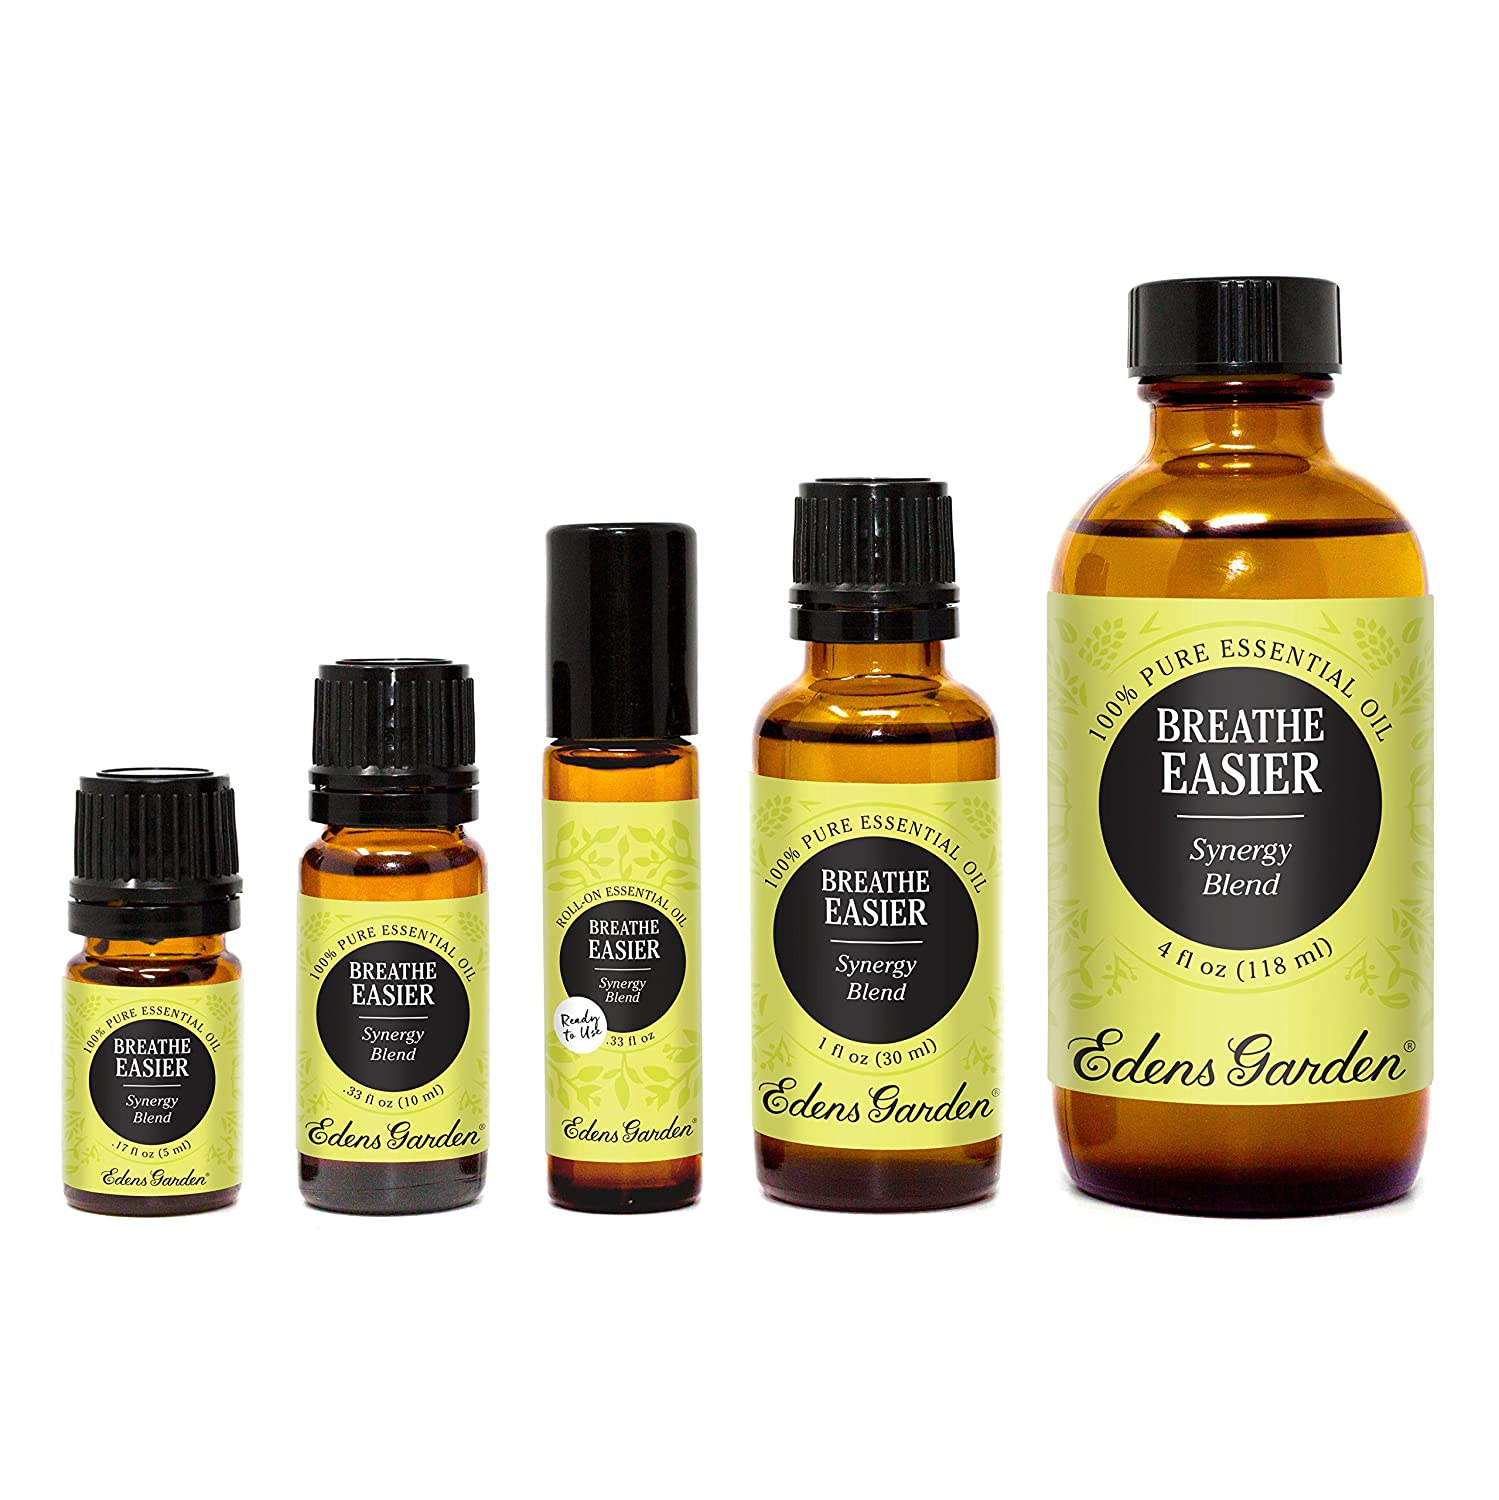 Breathe Easier 100% Pure Therapeutic Grade Synergy Blend Essential Oil by Edens Garden-10 ml, GC/MS tested, CPTG 837654537060